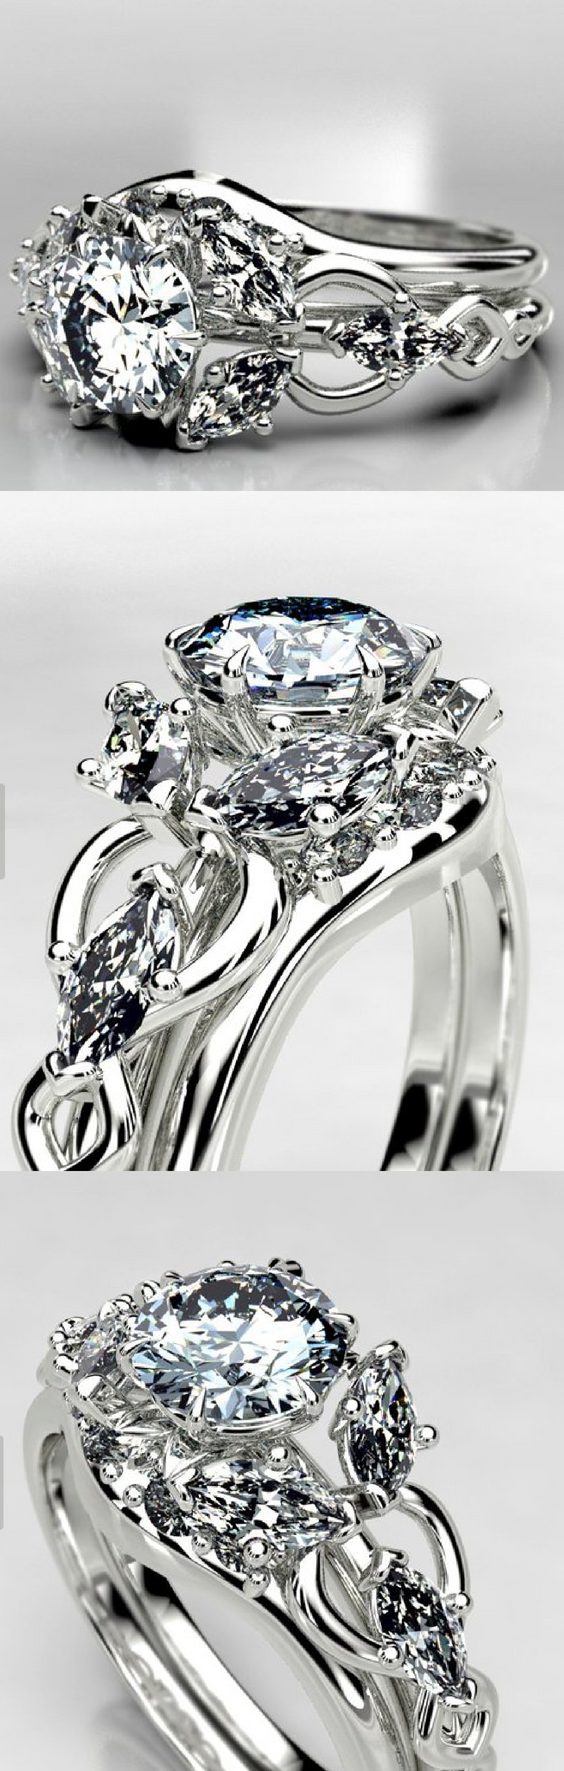 Brilliant Arwen Lord of The Rings Evening Star Moissanite Engagement Ring.png